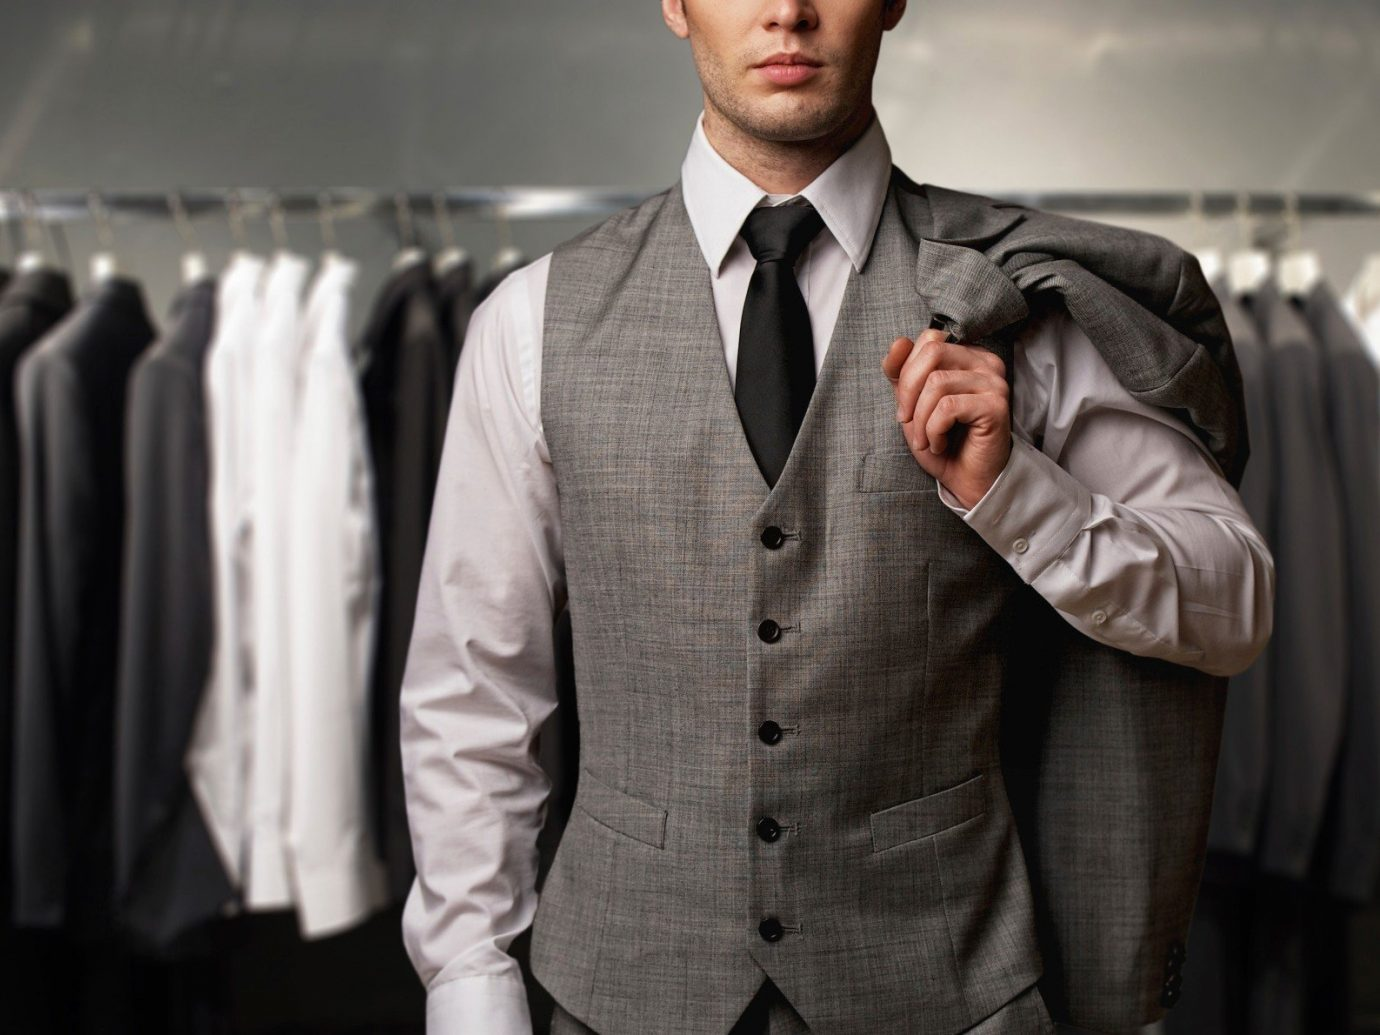 Summer Series suit person necktie man wearing clothing standing indoor formal wear ceiling male groom tuxedo gentleman dressed outerwear Business posing clothes